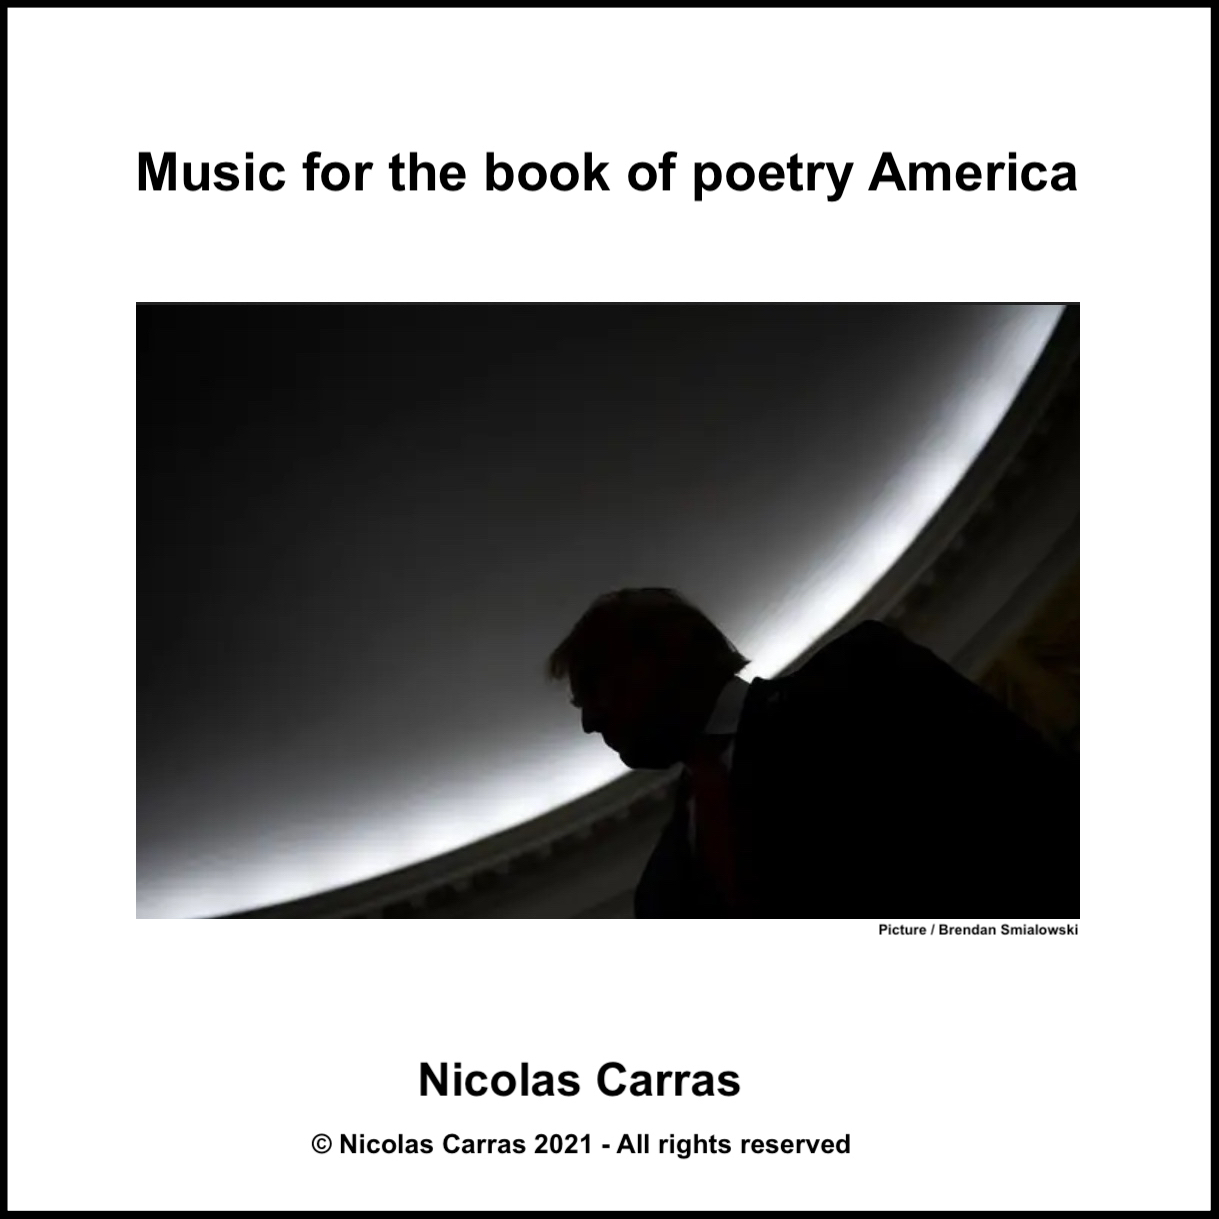 Music for the book of poetry America